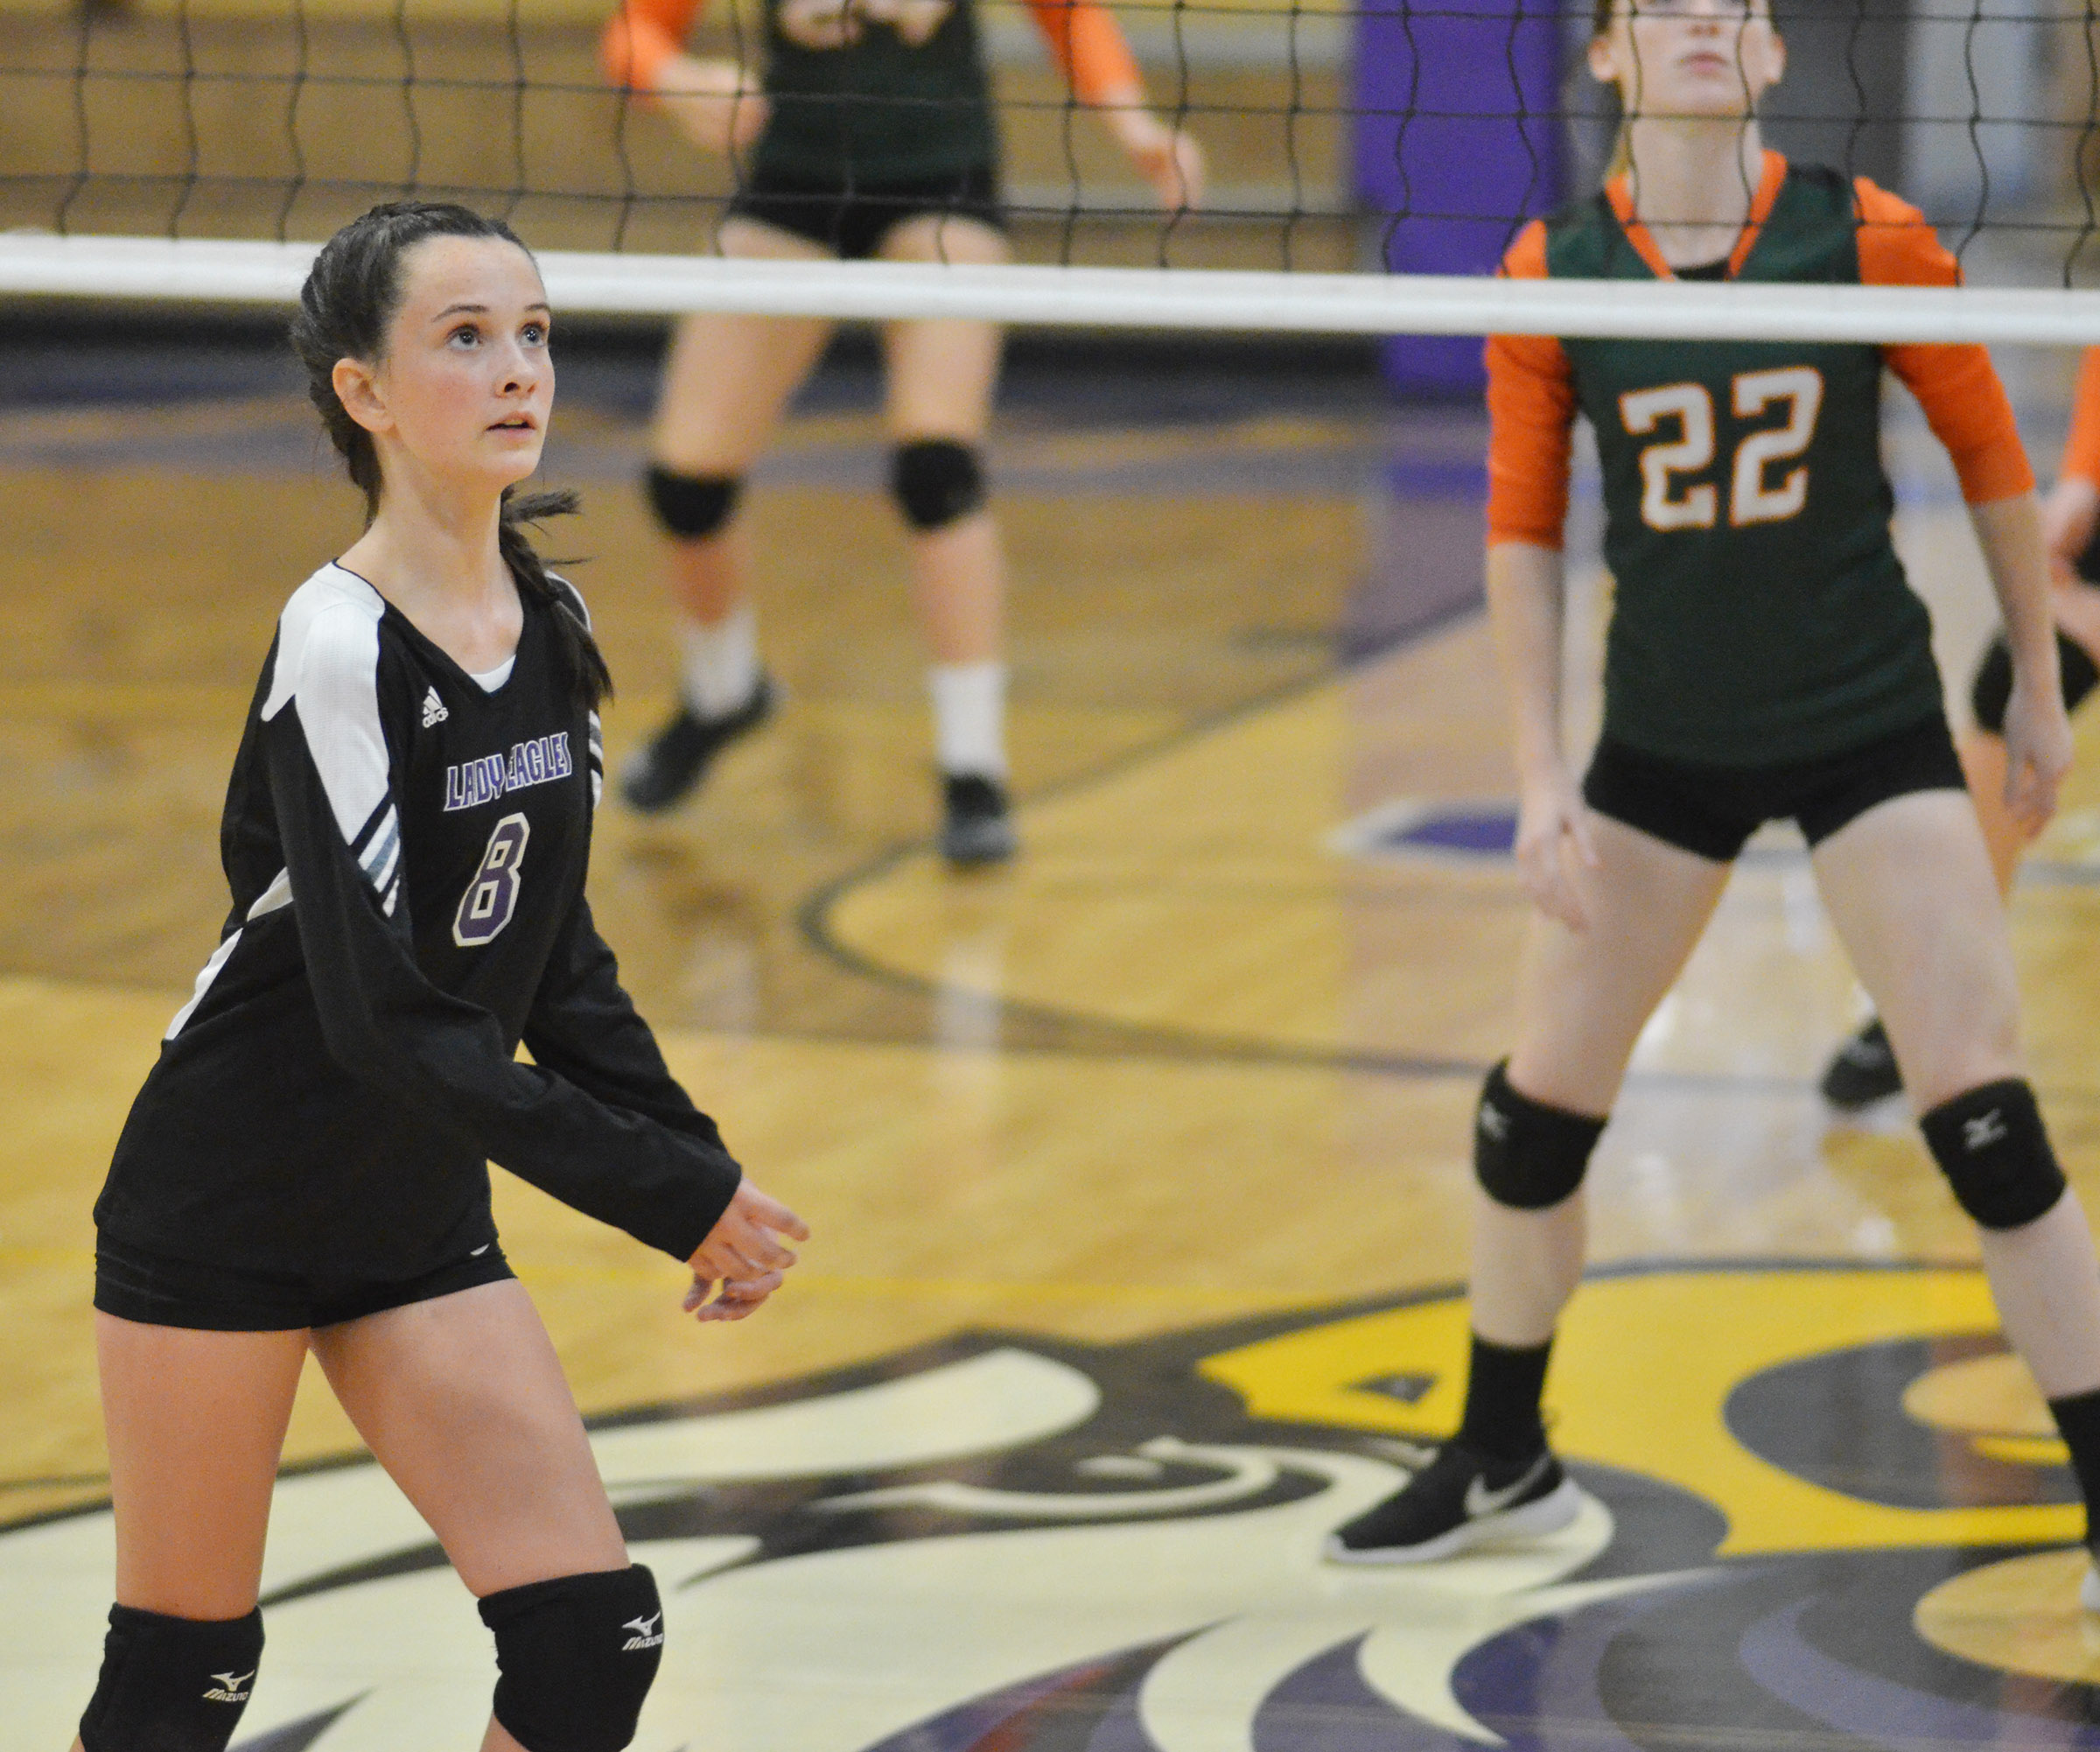 Campbellsville Middle School eighth-grader Sarah Adkins watches the ball.